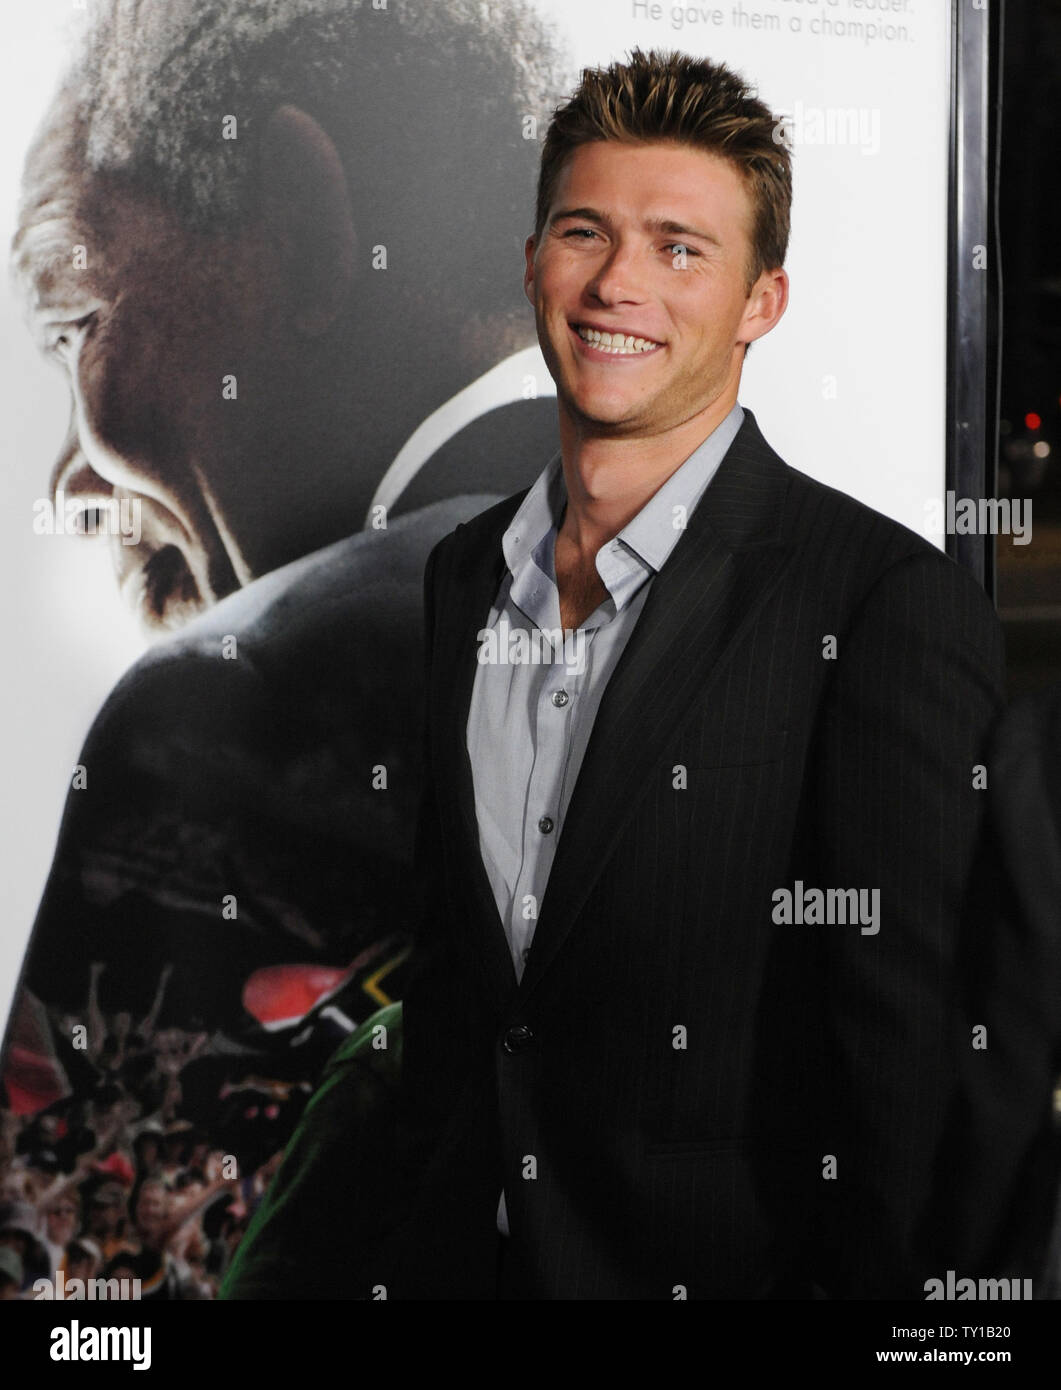 Scott Eastwood attends Clint Eastwood's new biographic drama motion picture 'Invictus' in Beverly Hills, California on December 3, 2009. Morgan Freeman portrays Nelson Mandela, in his first term as the South African President, initiates a unique venture to unite the apartheid-torn land: enlist the national rugby team on a mission to win the 1995 Rugby World Cup.     UPI/Jim Ruymen - Stock Image